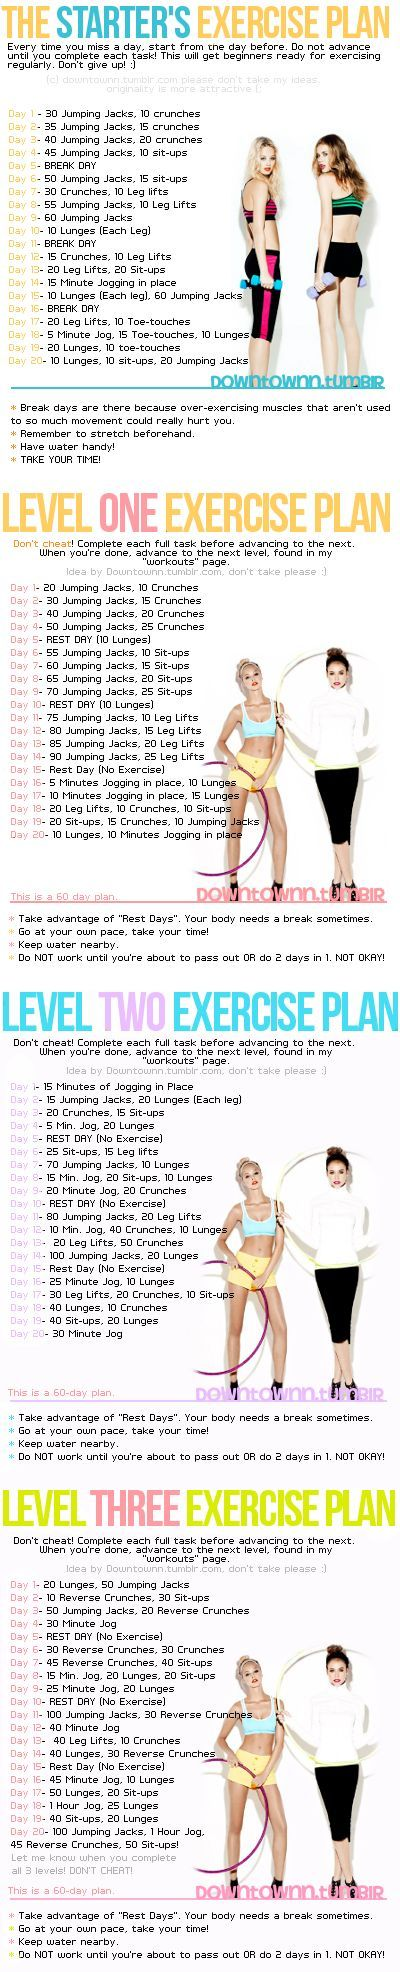 The best weight loss exercise plan. For more visit website :: http://bellastwist.com/rapid-weight-loss/ Tap the link now to see where the world's leading interior designers purchase their beautifully crafted, hand picked kitchen, bath and bar and prep faucets to outfit their unique designs.